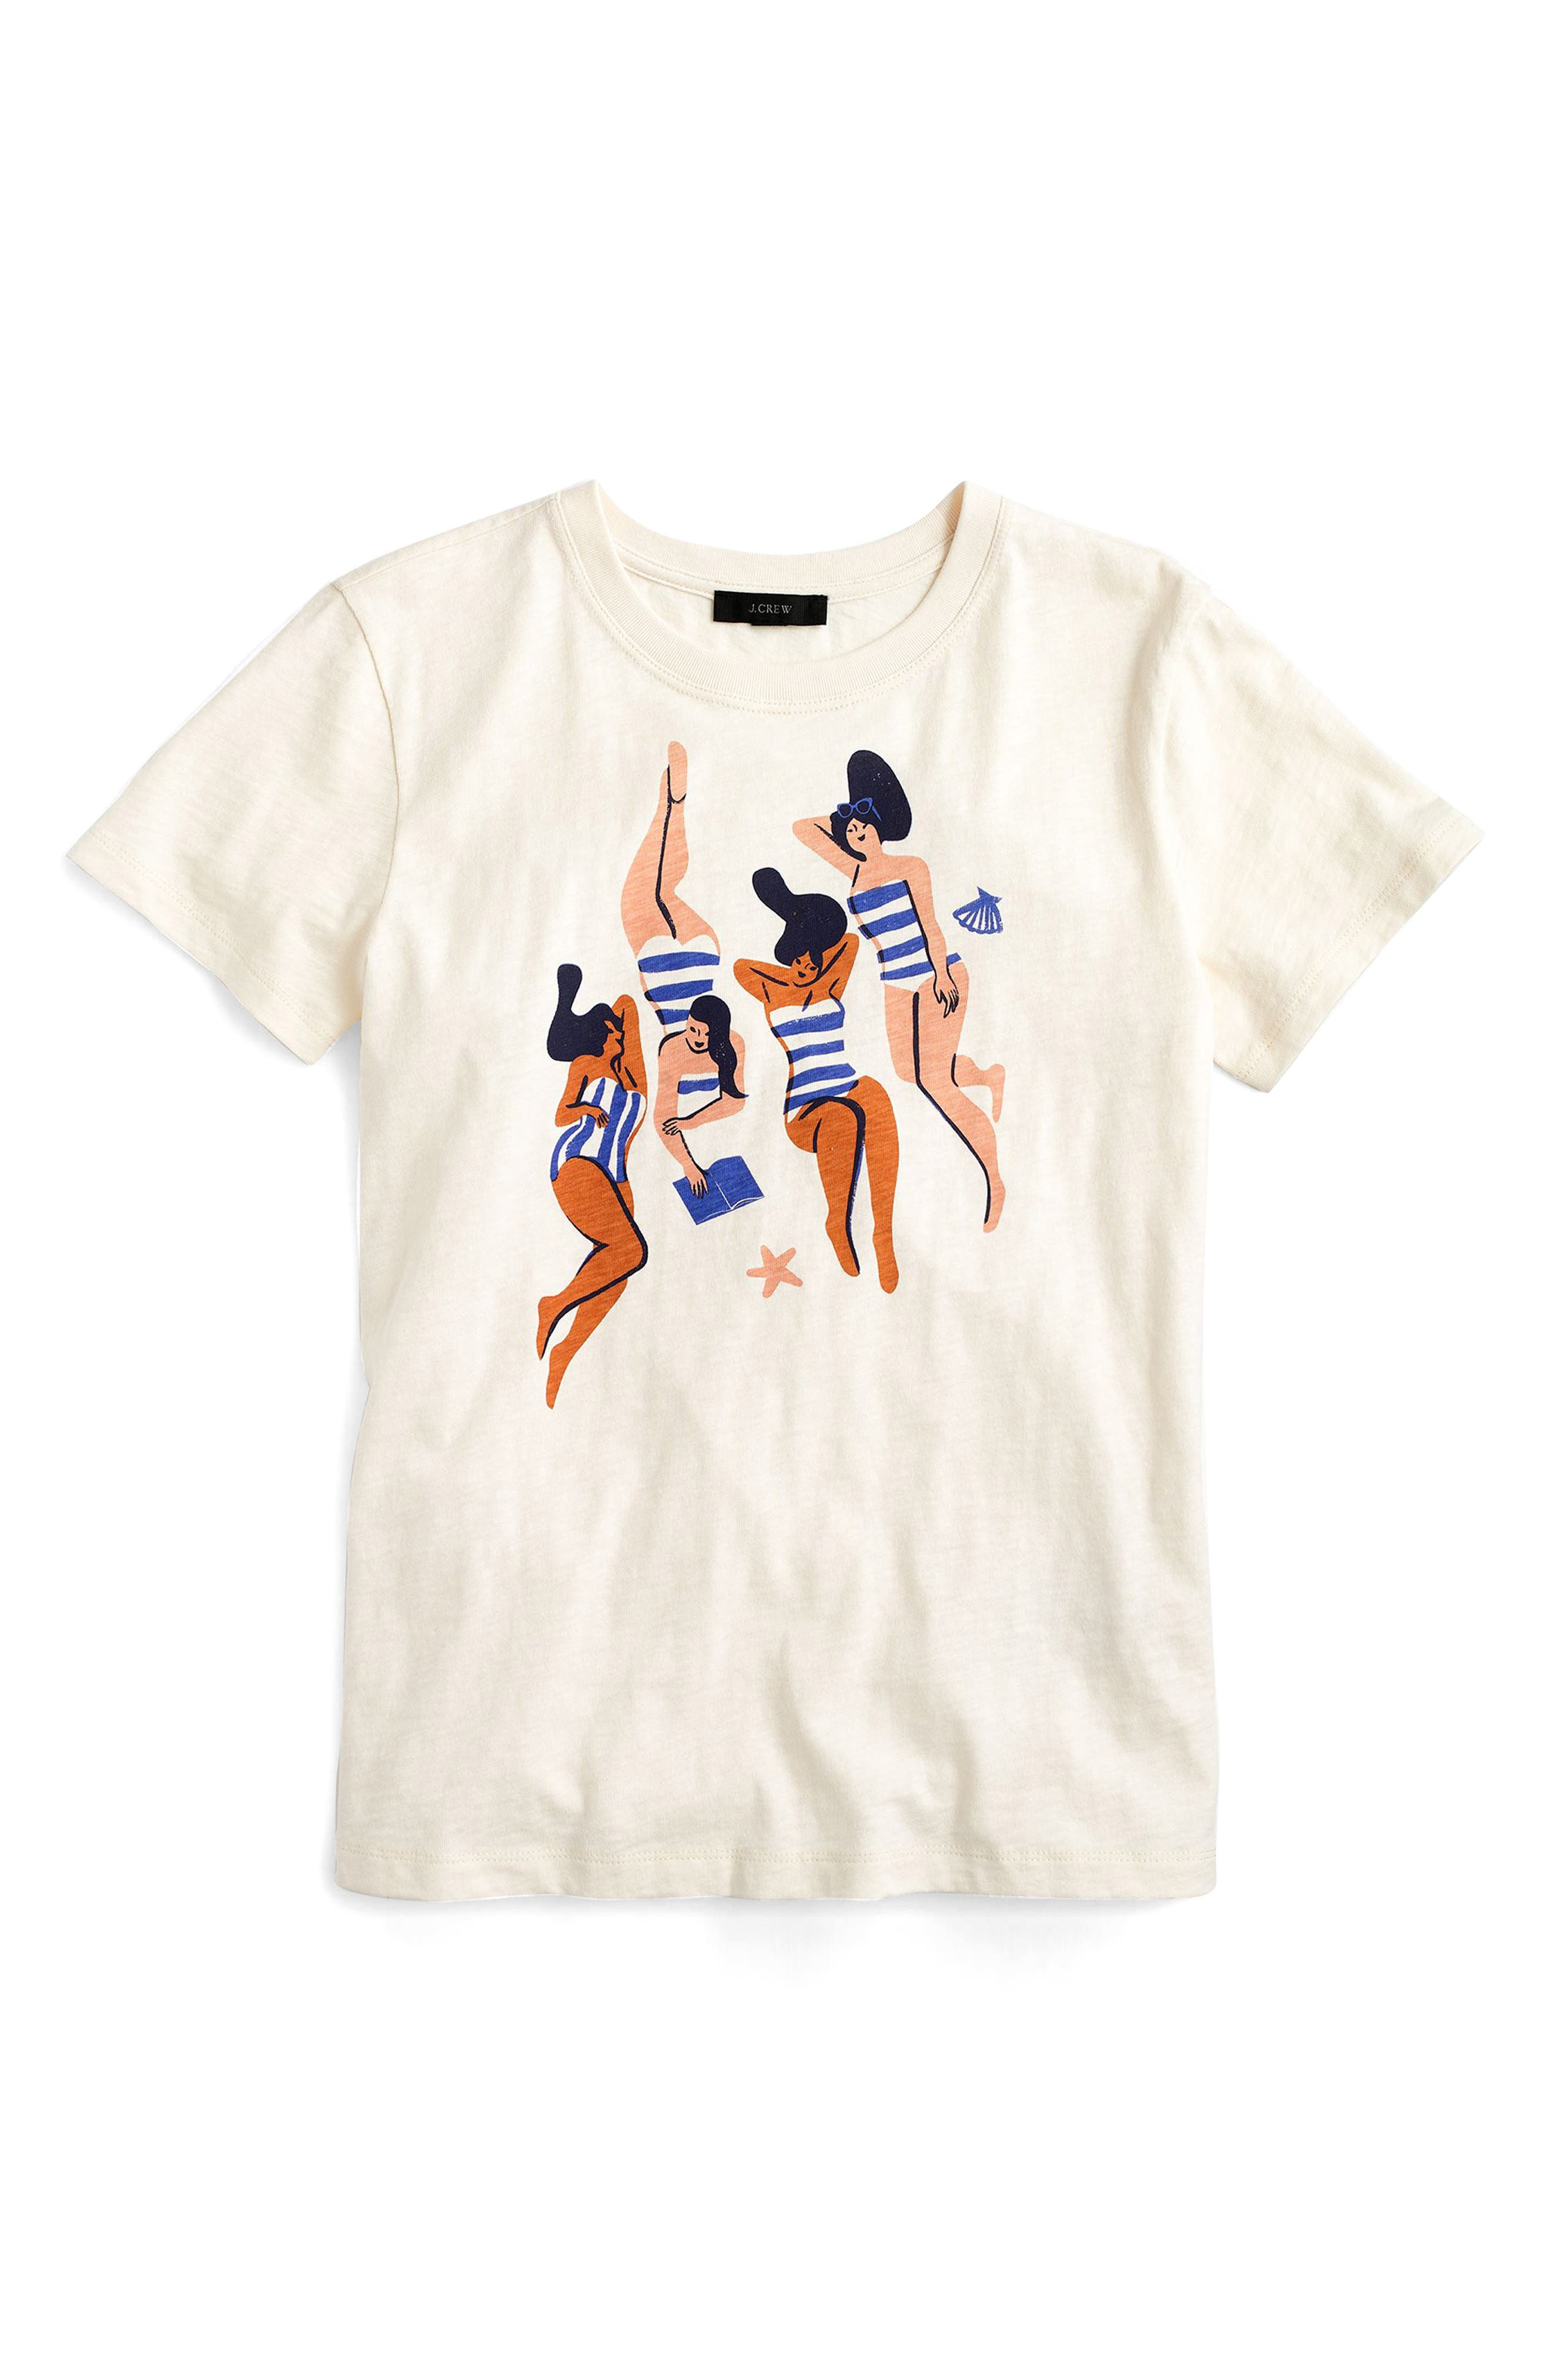 Virginie Morgand x J.Crew Sunbathers Graphic Tee,                             Alternate thumbnail 2, color,                             250